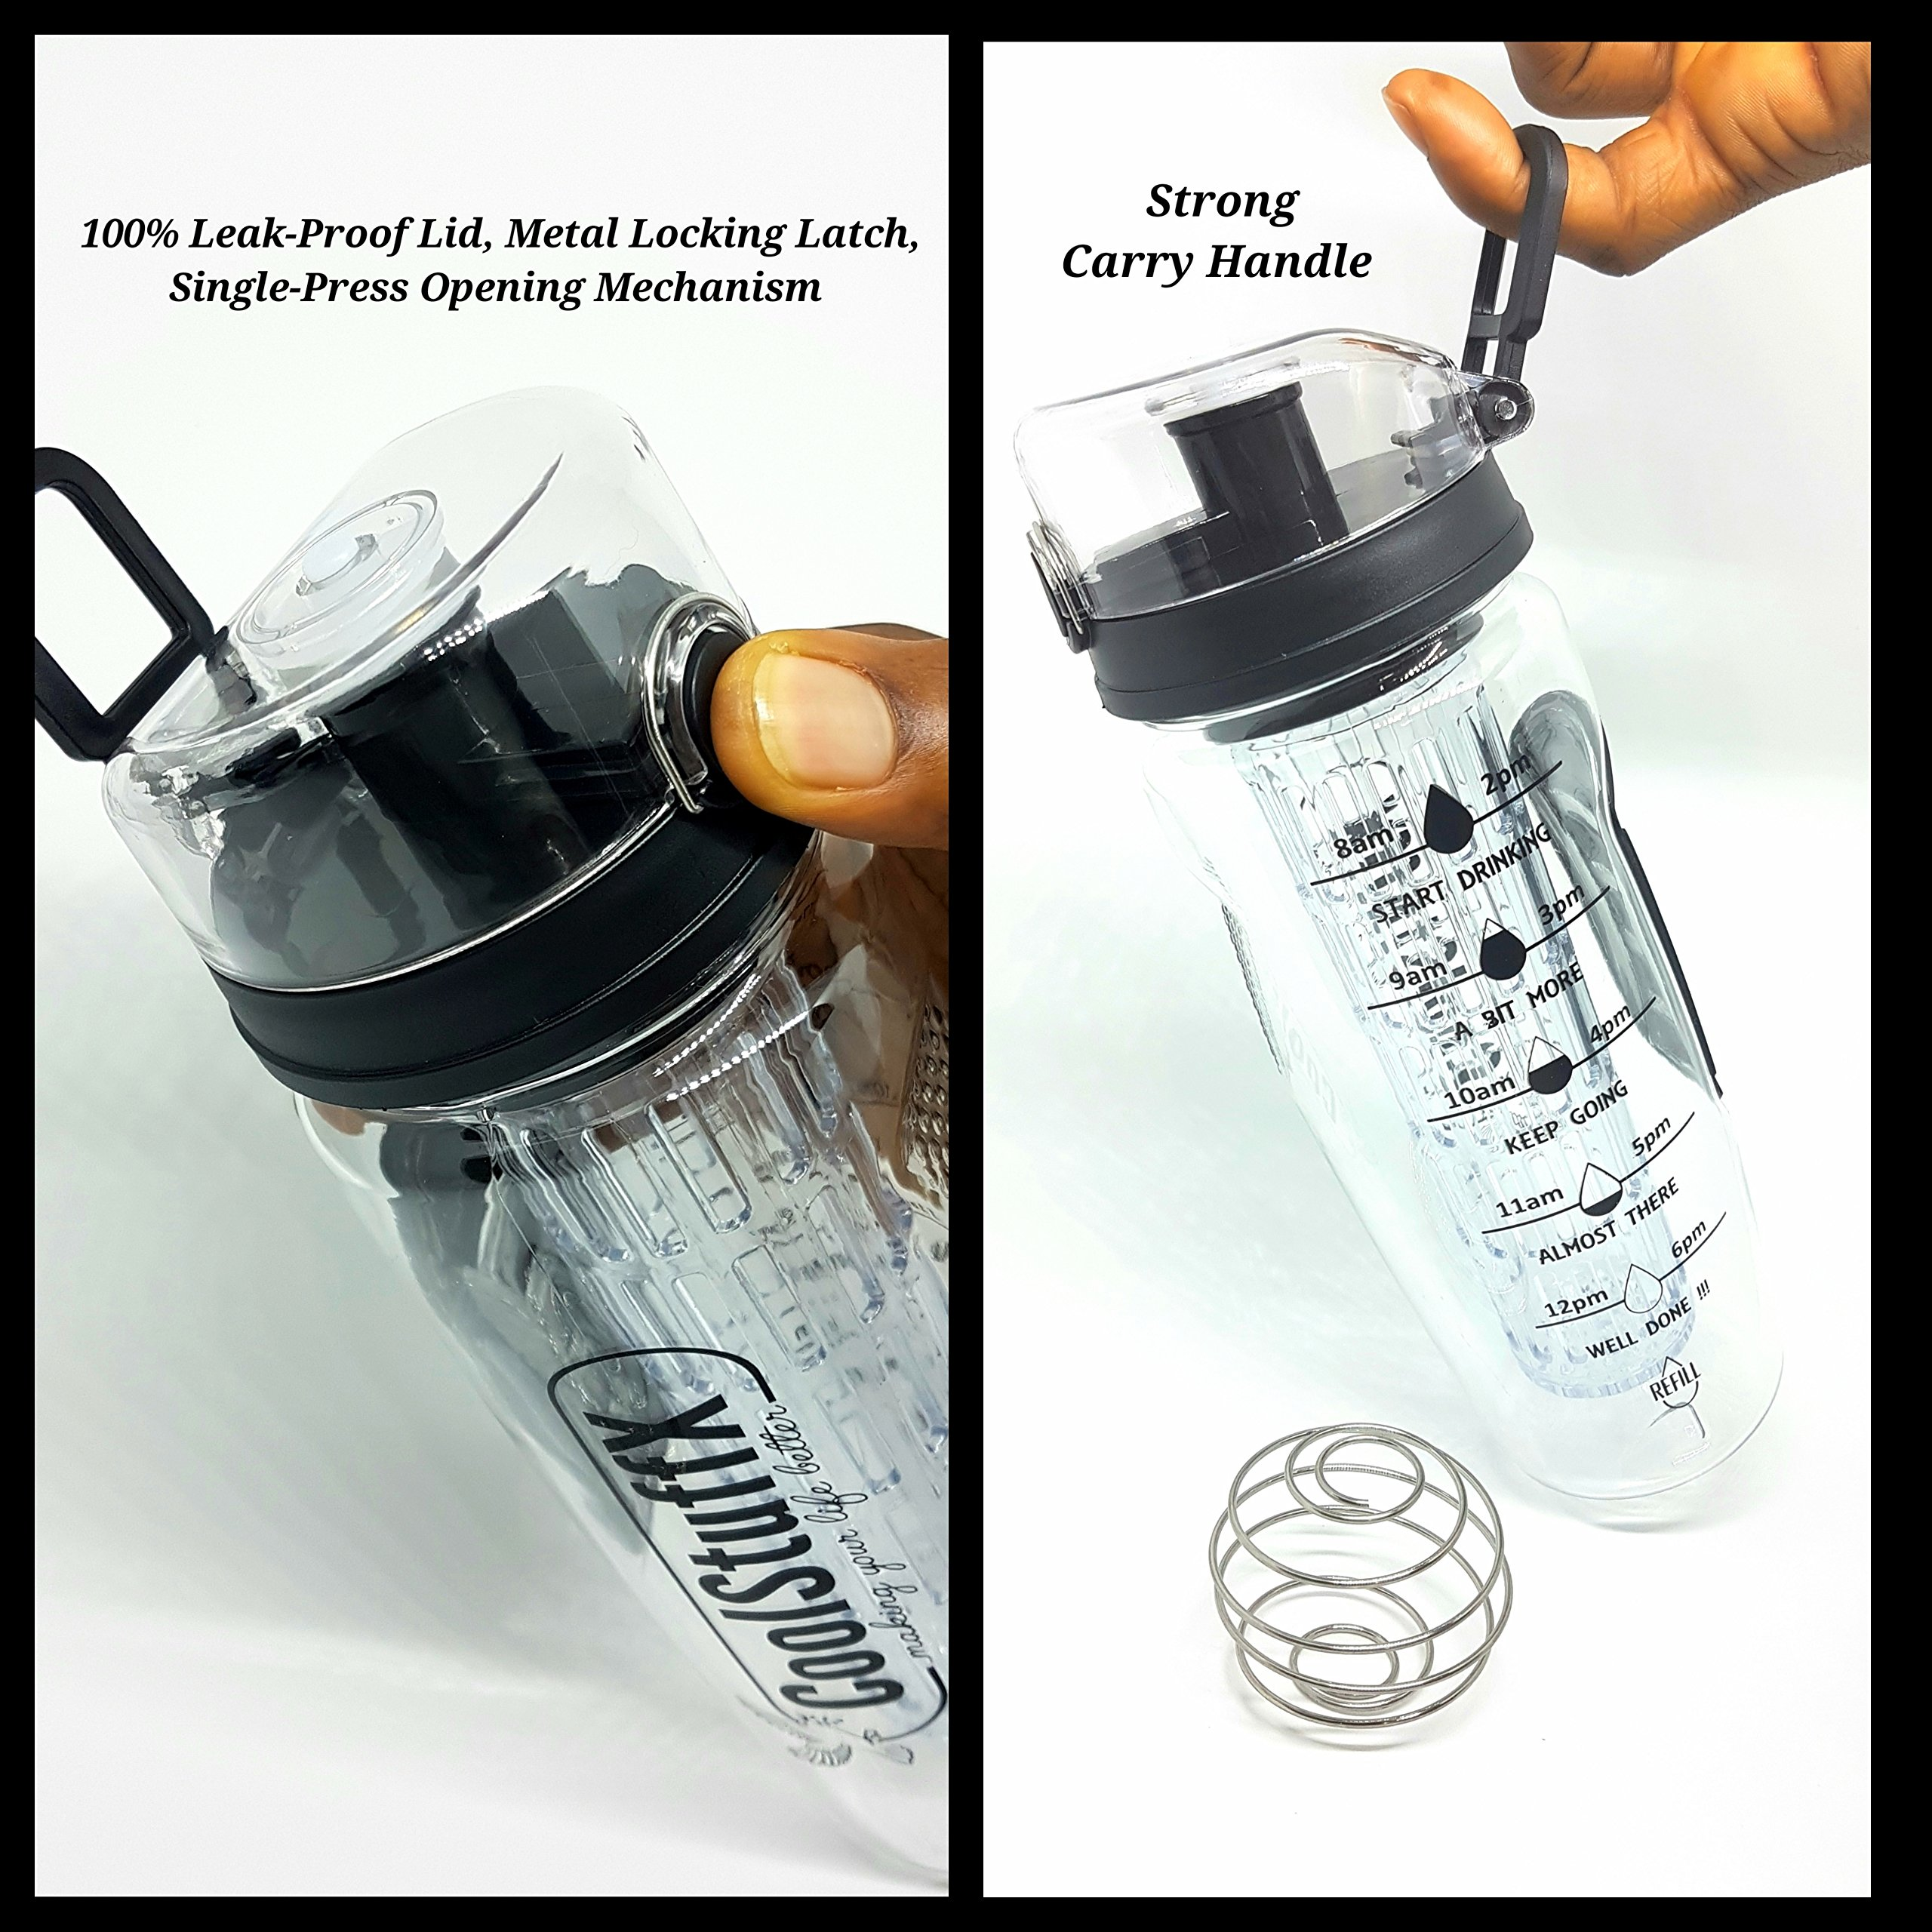 Coolstuffx-3-in-1-Fruit-Infuser-water-bottle-protein-shaker-Long-Infuser-rod-Large-1-litre-or-32oz-motivational-time-guide-BPA-Free-no-leak-Anti-condensation-sleeve-FREE-Recipe-eBook